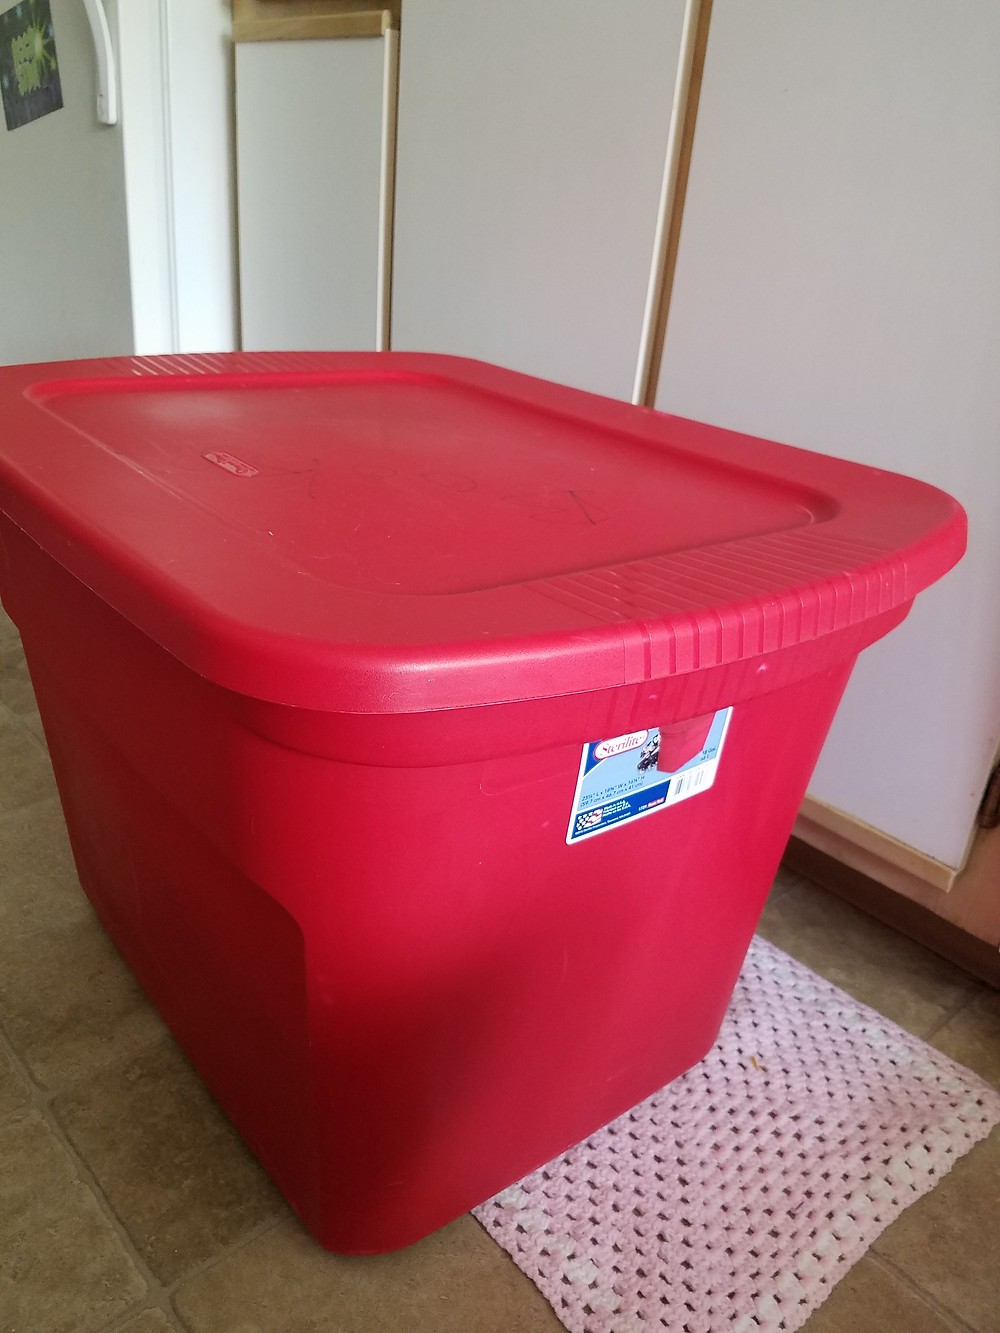 A large, red, 18 gallon storage tub with lid.